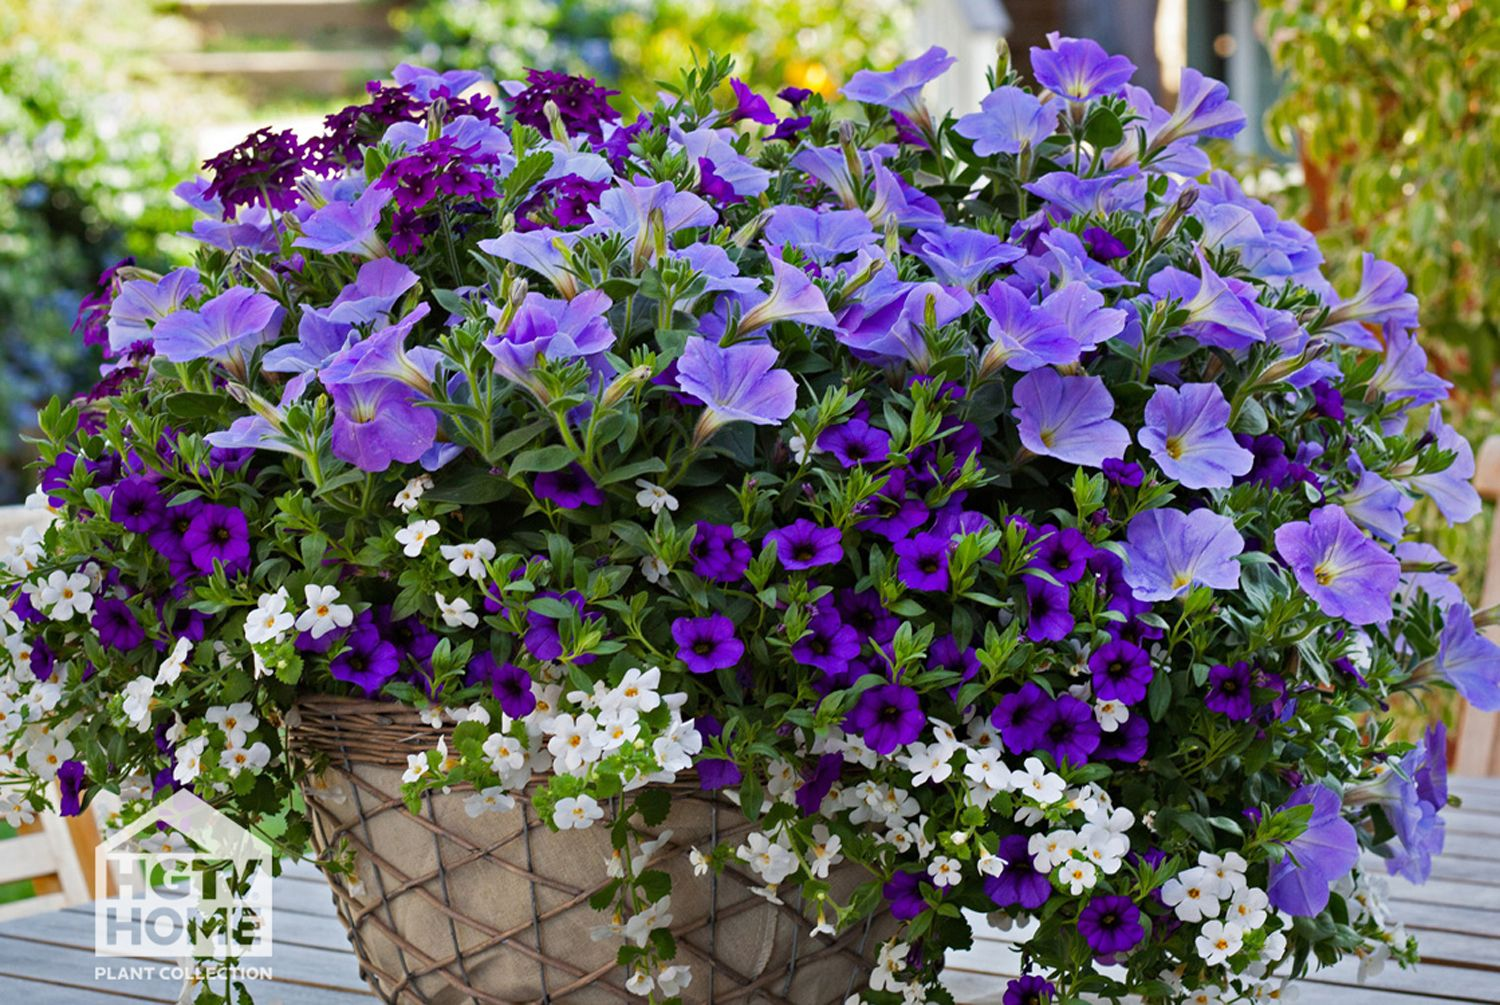 New Hgtv S Friendly Fusion Hanging Baskets Container Flowers Purple Flowers Garden Container Gardening